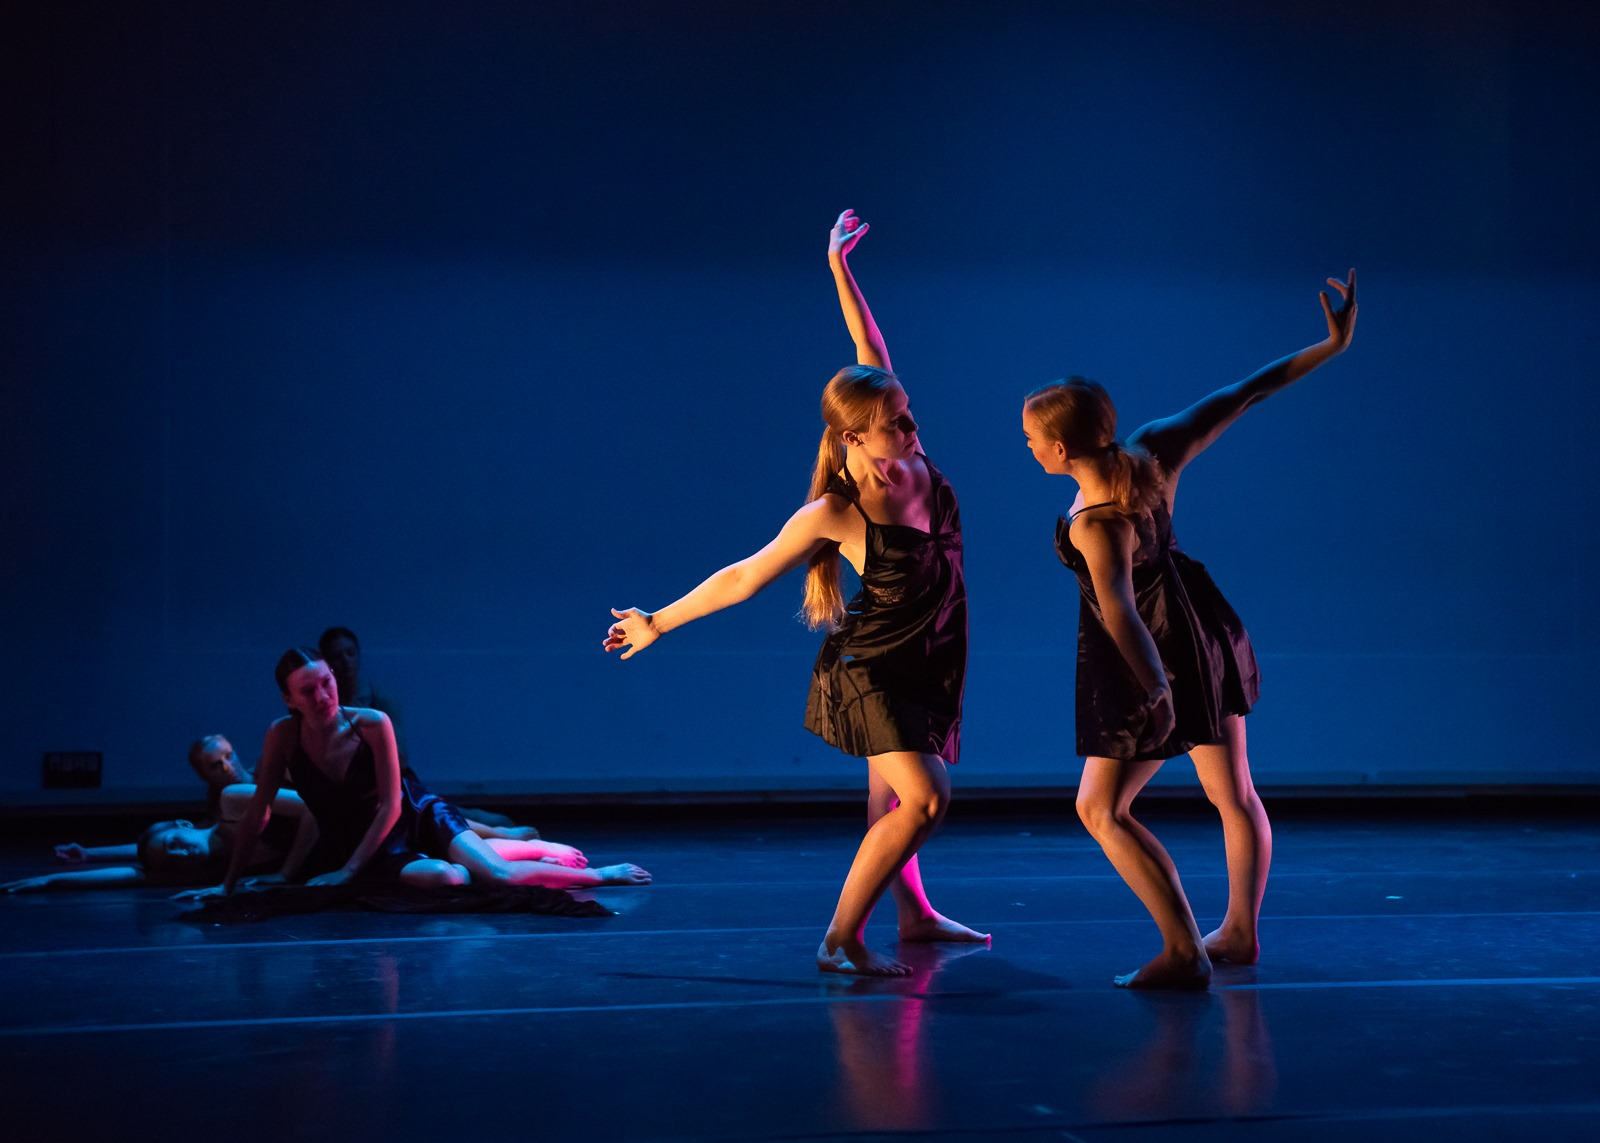 """In The Dark I Felt Her Dreams"" choreographed by Andrea Ward"